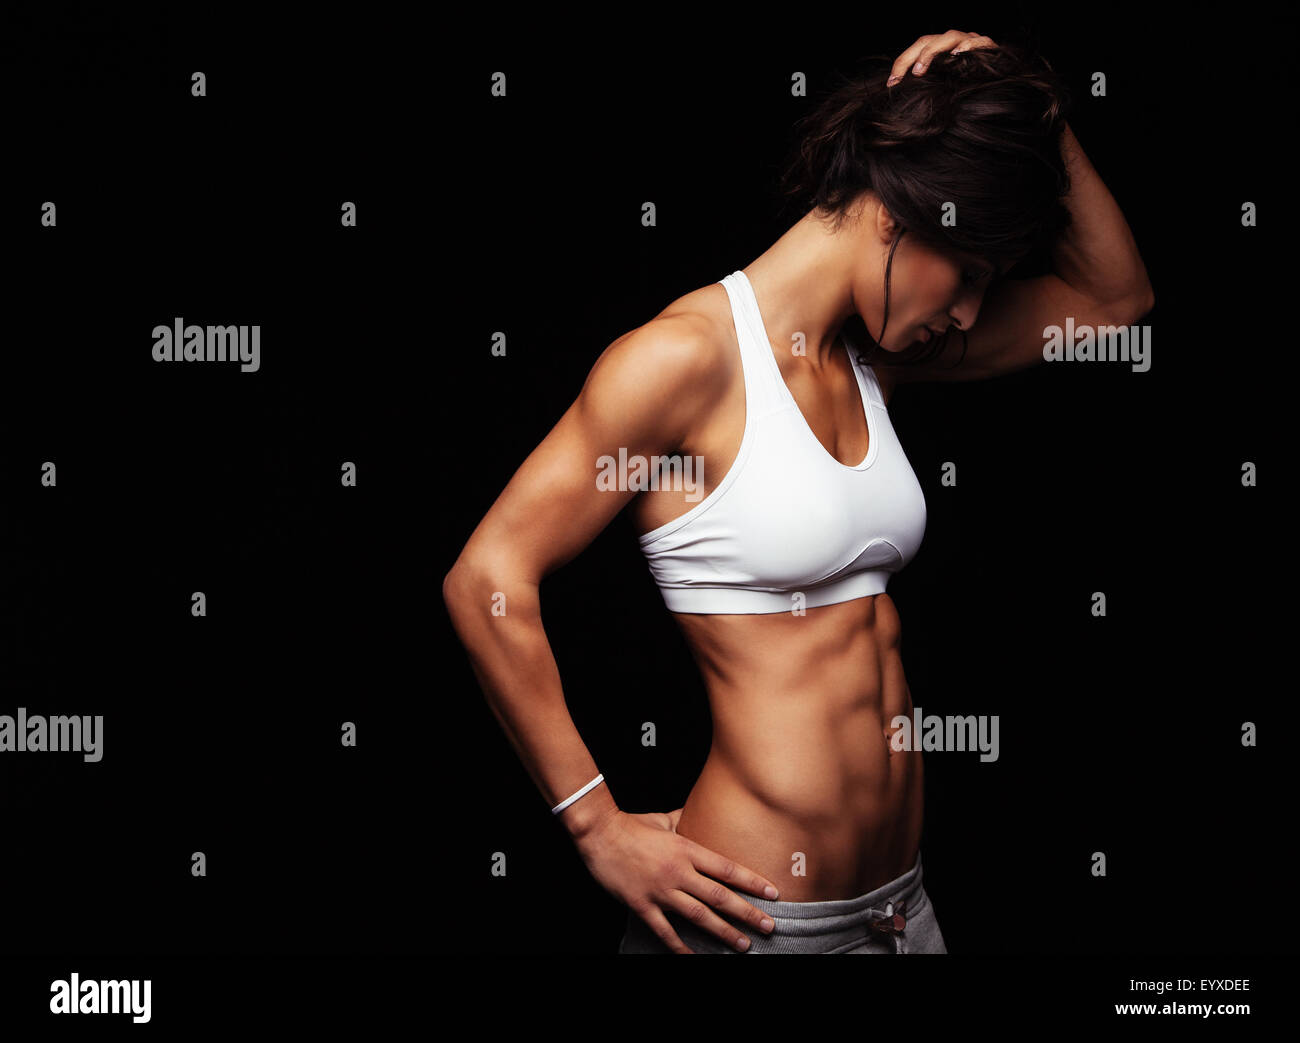 Image of fit young woman in sports wear looking down while standing on black background. Muscular fitness model Stock Photo